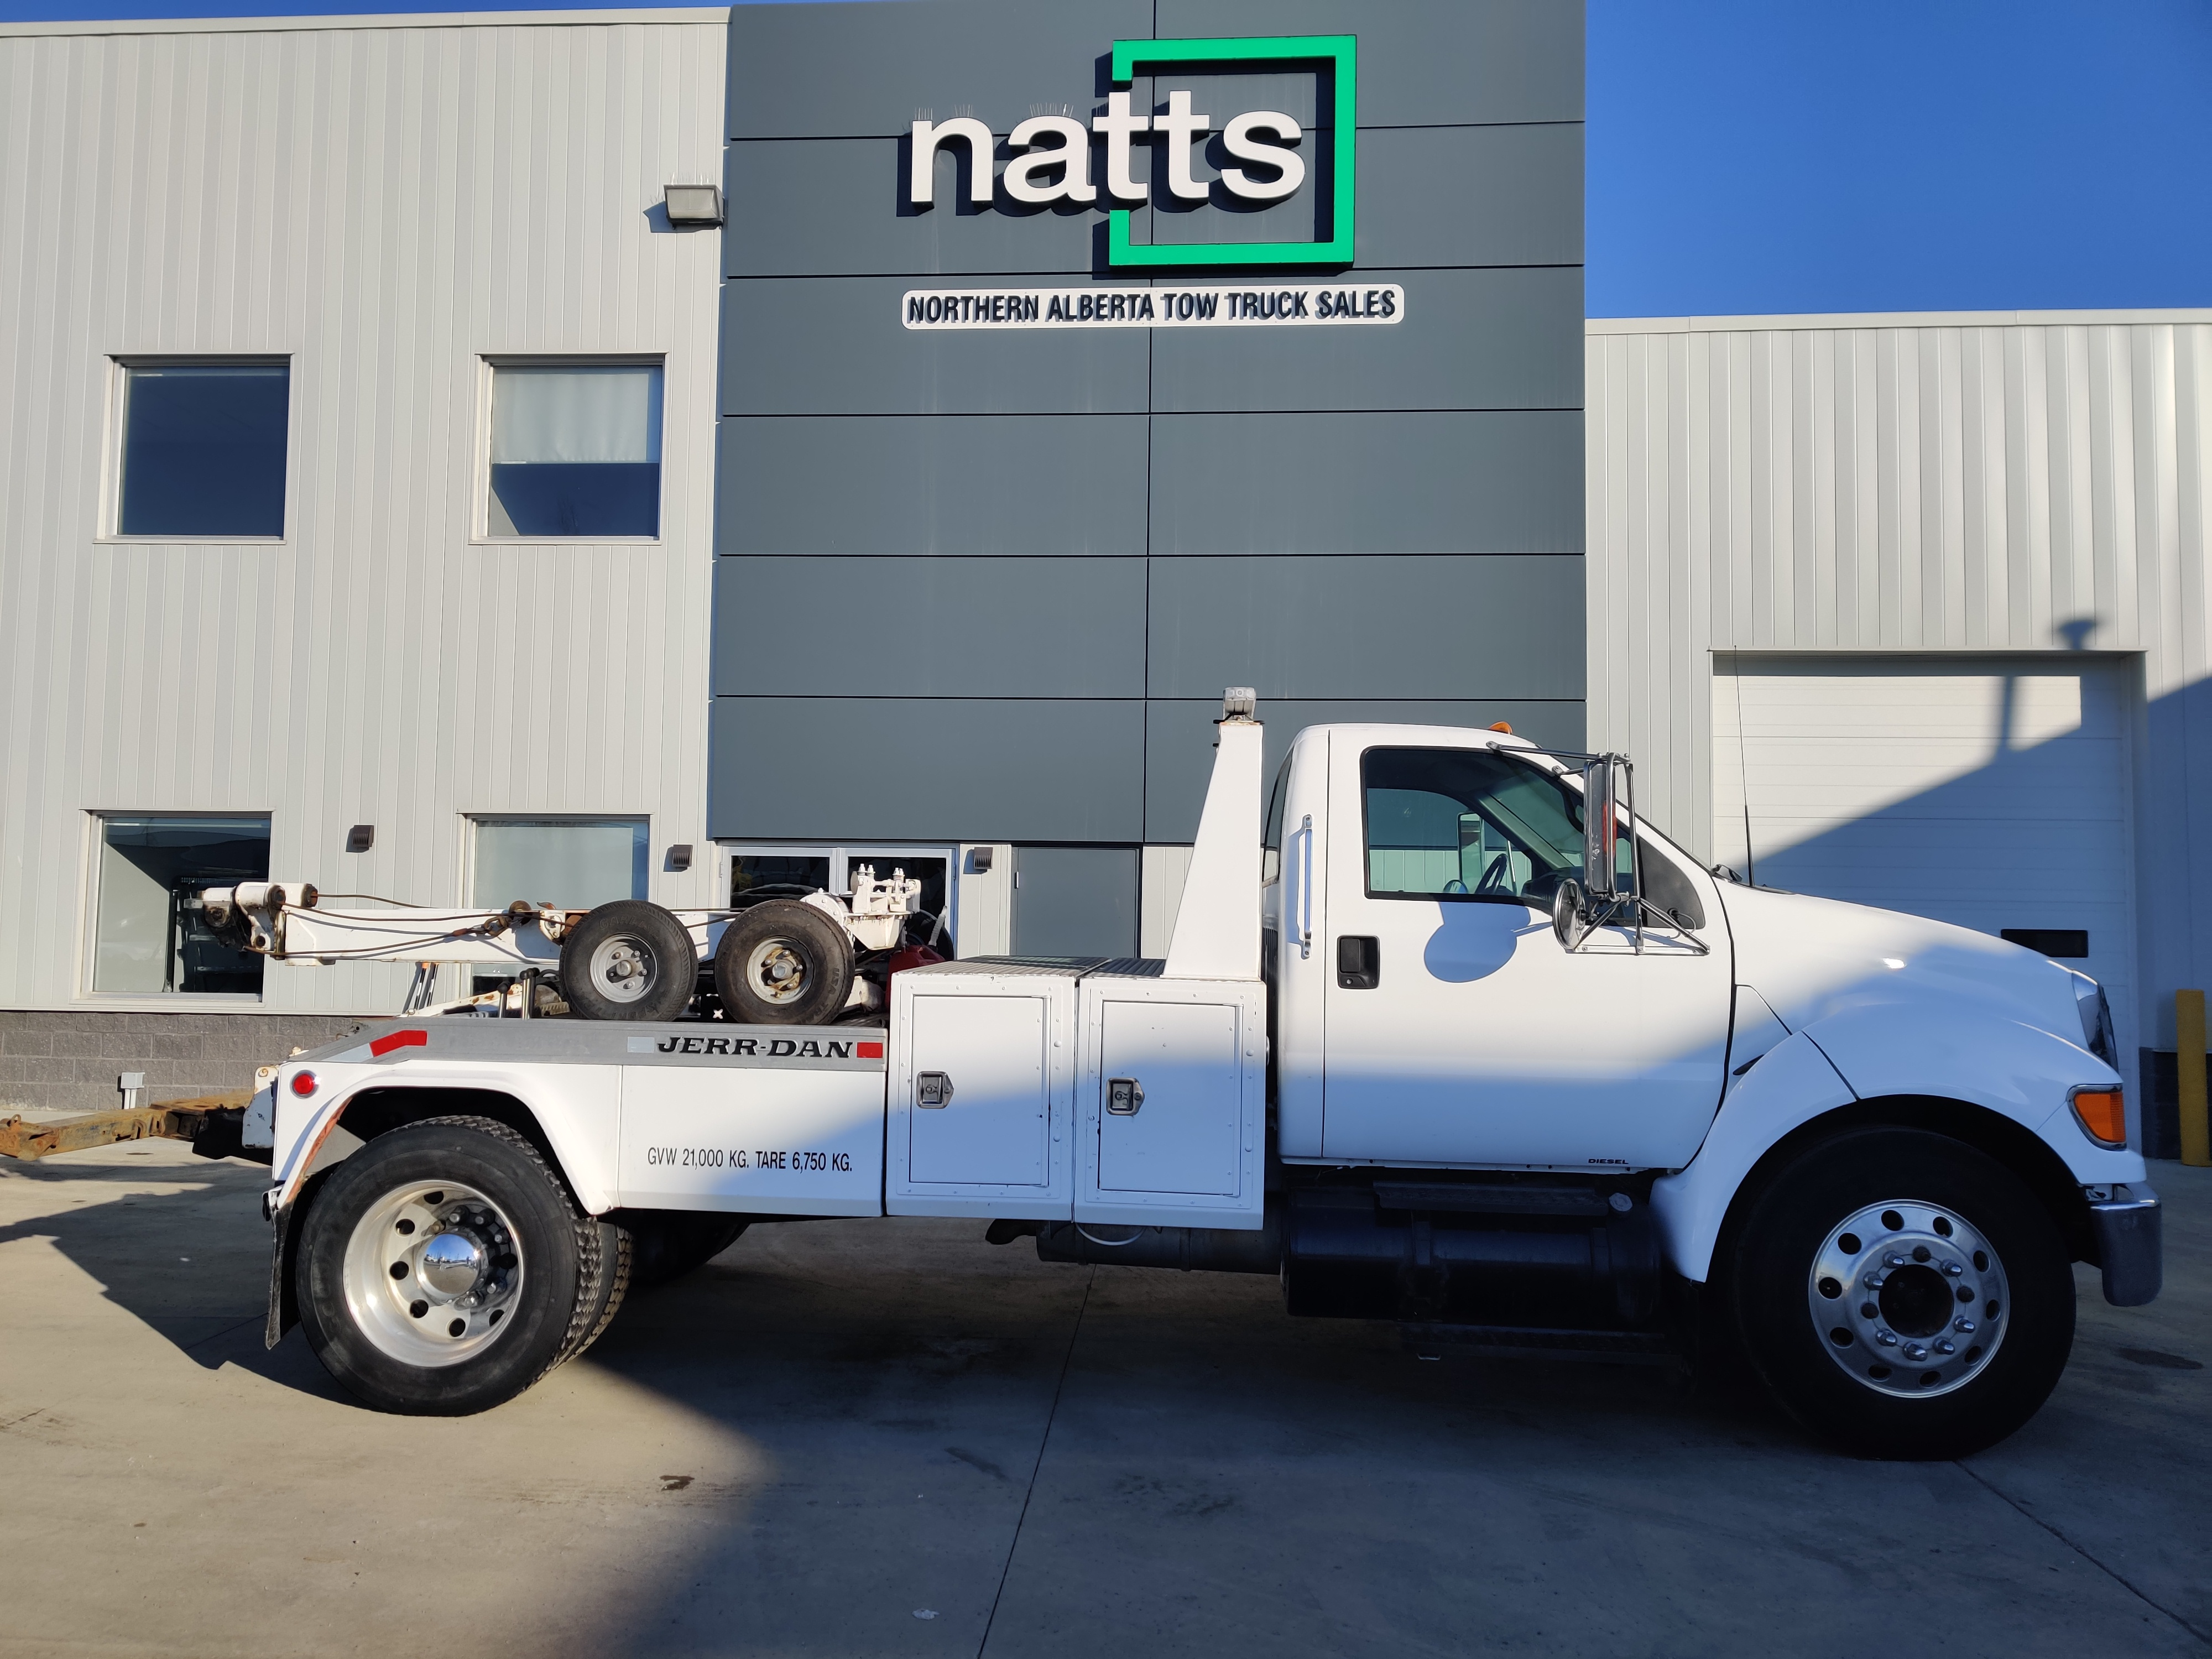 2005 FORD F650 W/ JERRDAN WRECKER – STOCK#2491